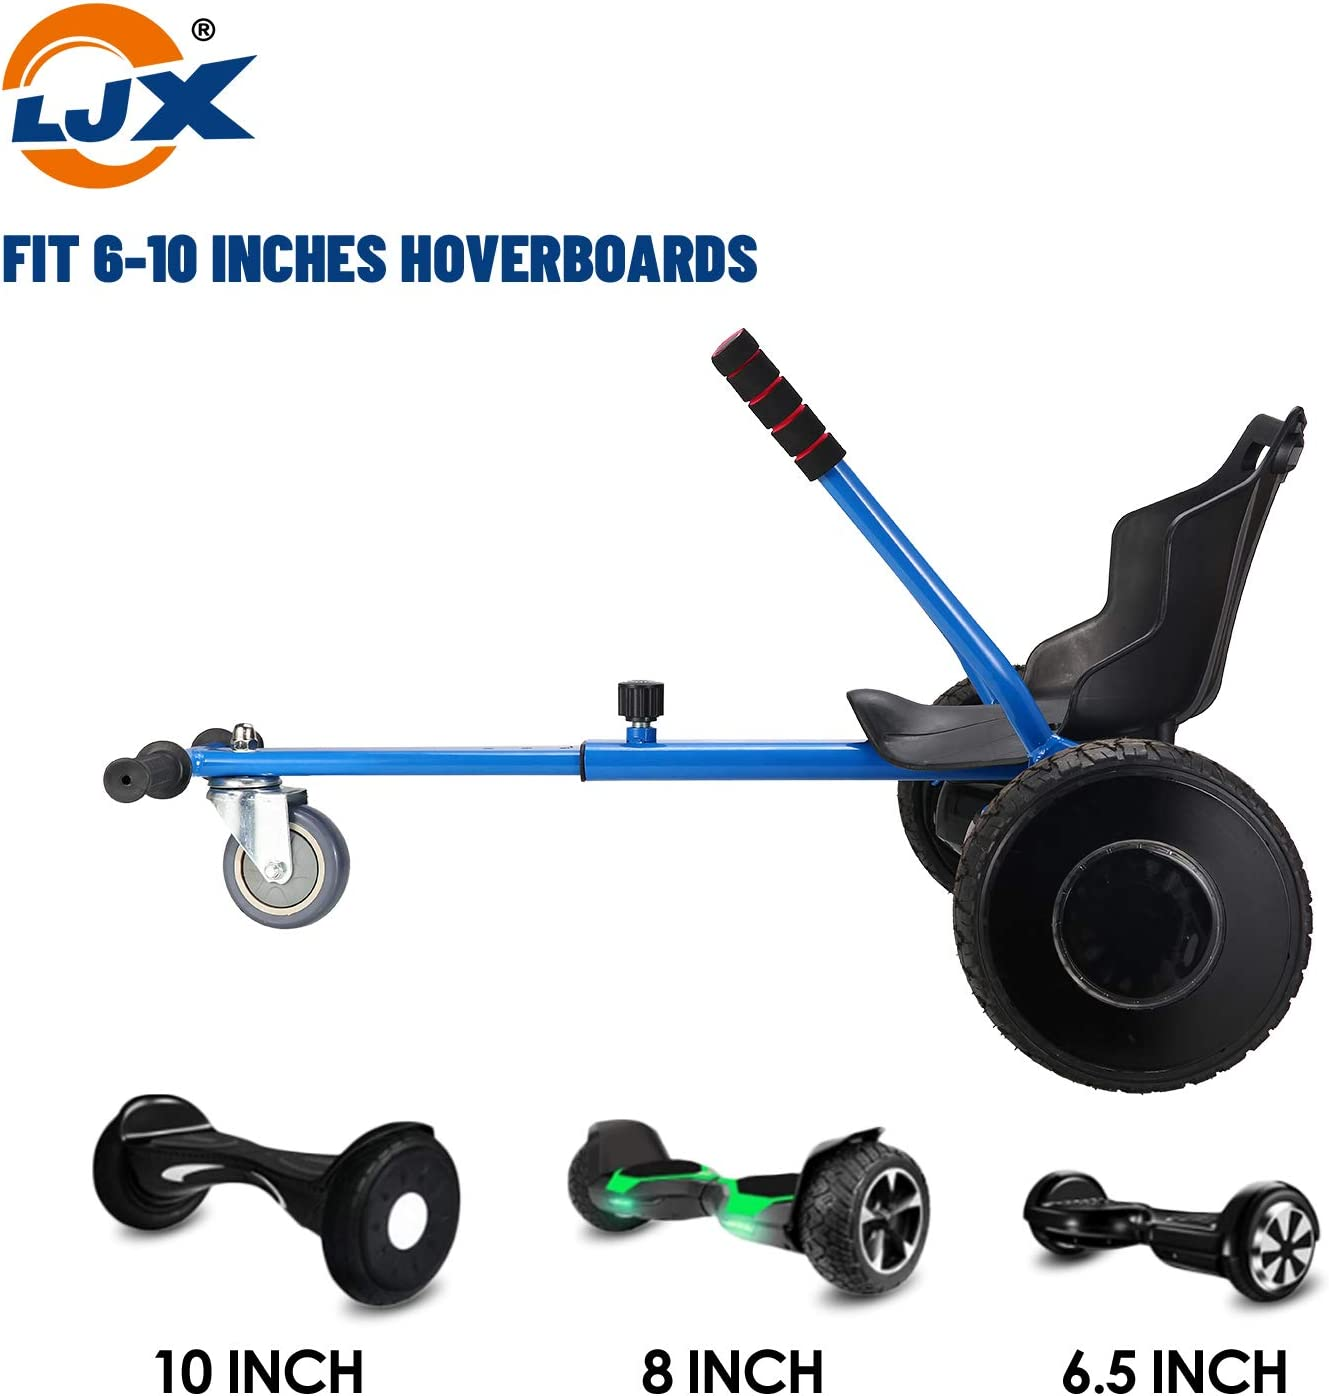 """LJX Hoverboard Seat Attachment Suitable for All Ages Go Kart Hoverboard Accessories for 6.5/"""" 8/"""" 10/"""" Hoverboard"""